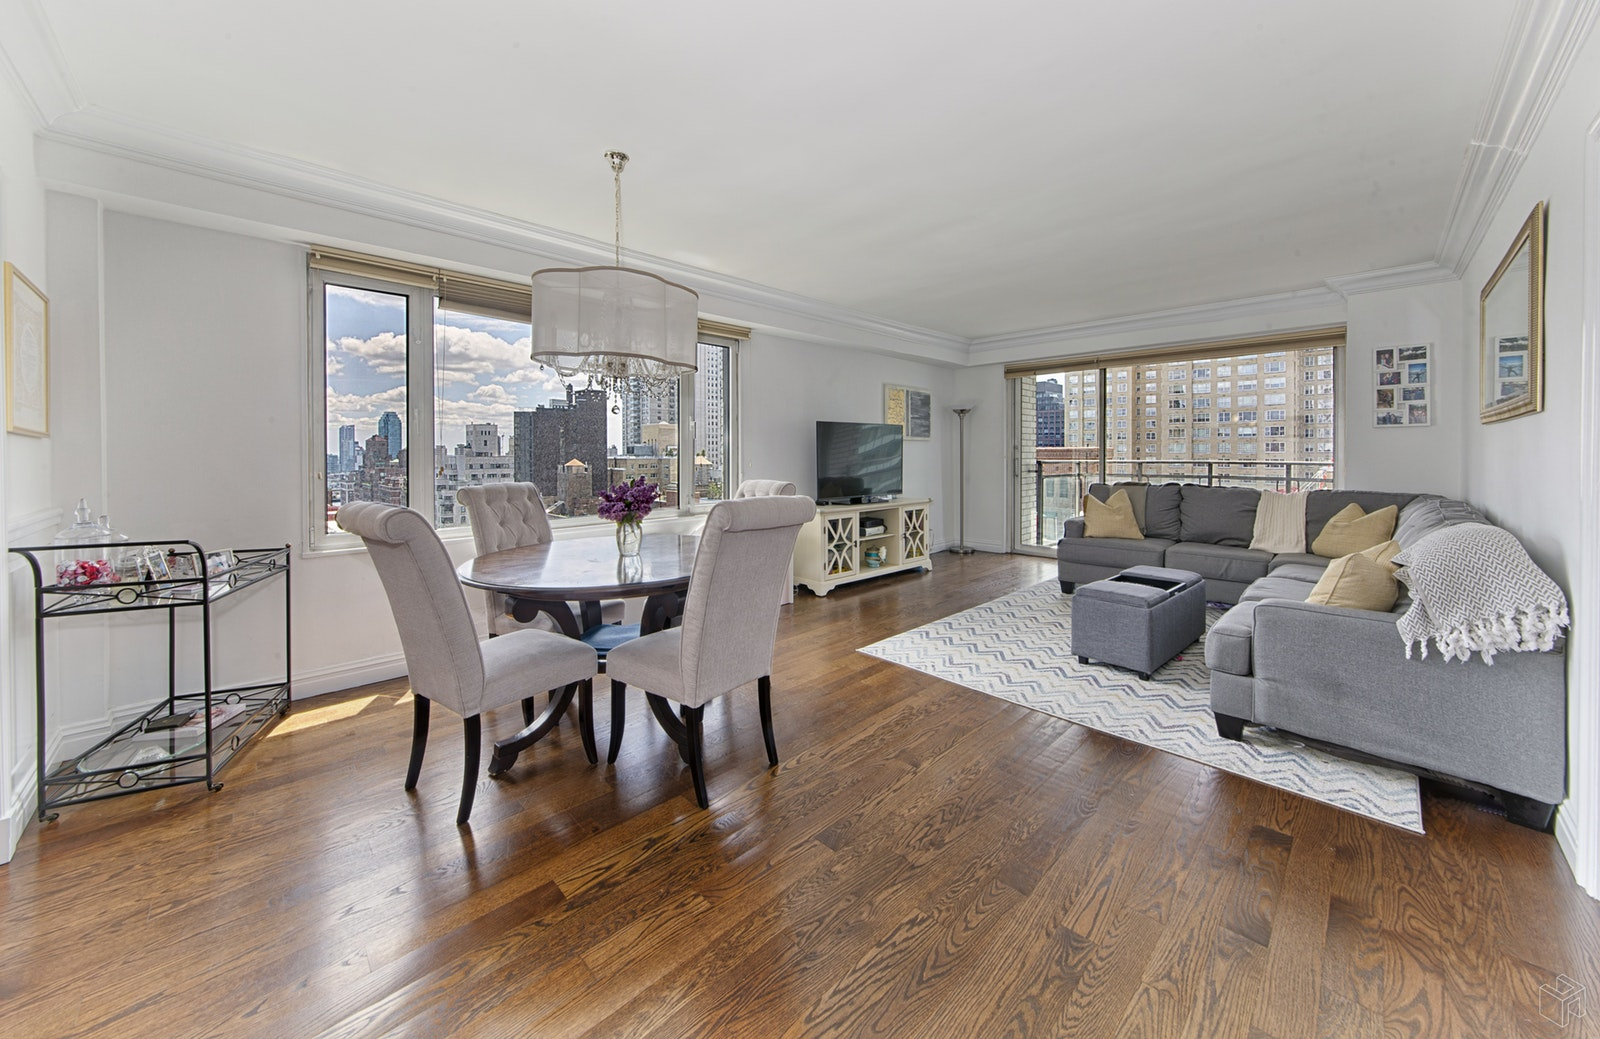 303 East 57th Street 20b, Midtown East, NYC, 10022, $750,000, Sold Property, Halstead Real Estate, Photo 1